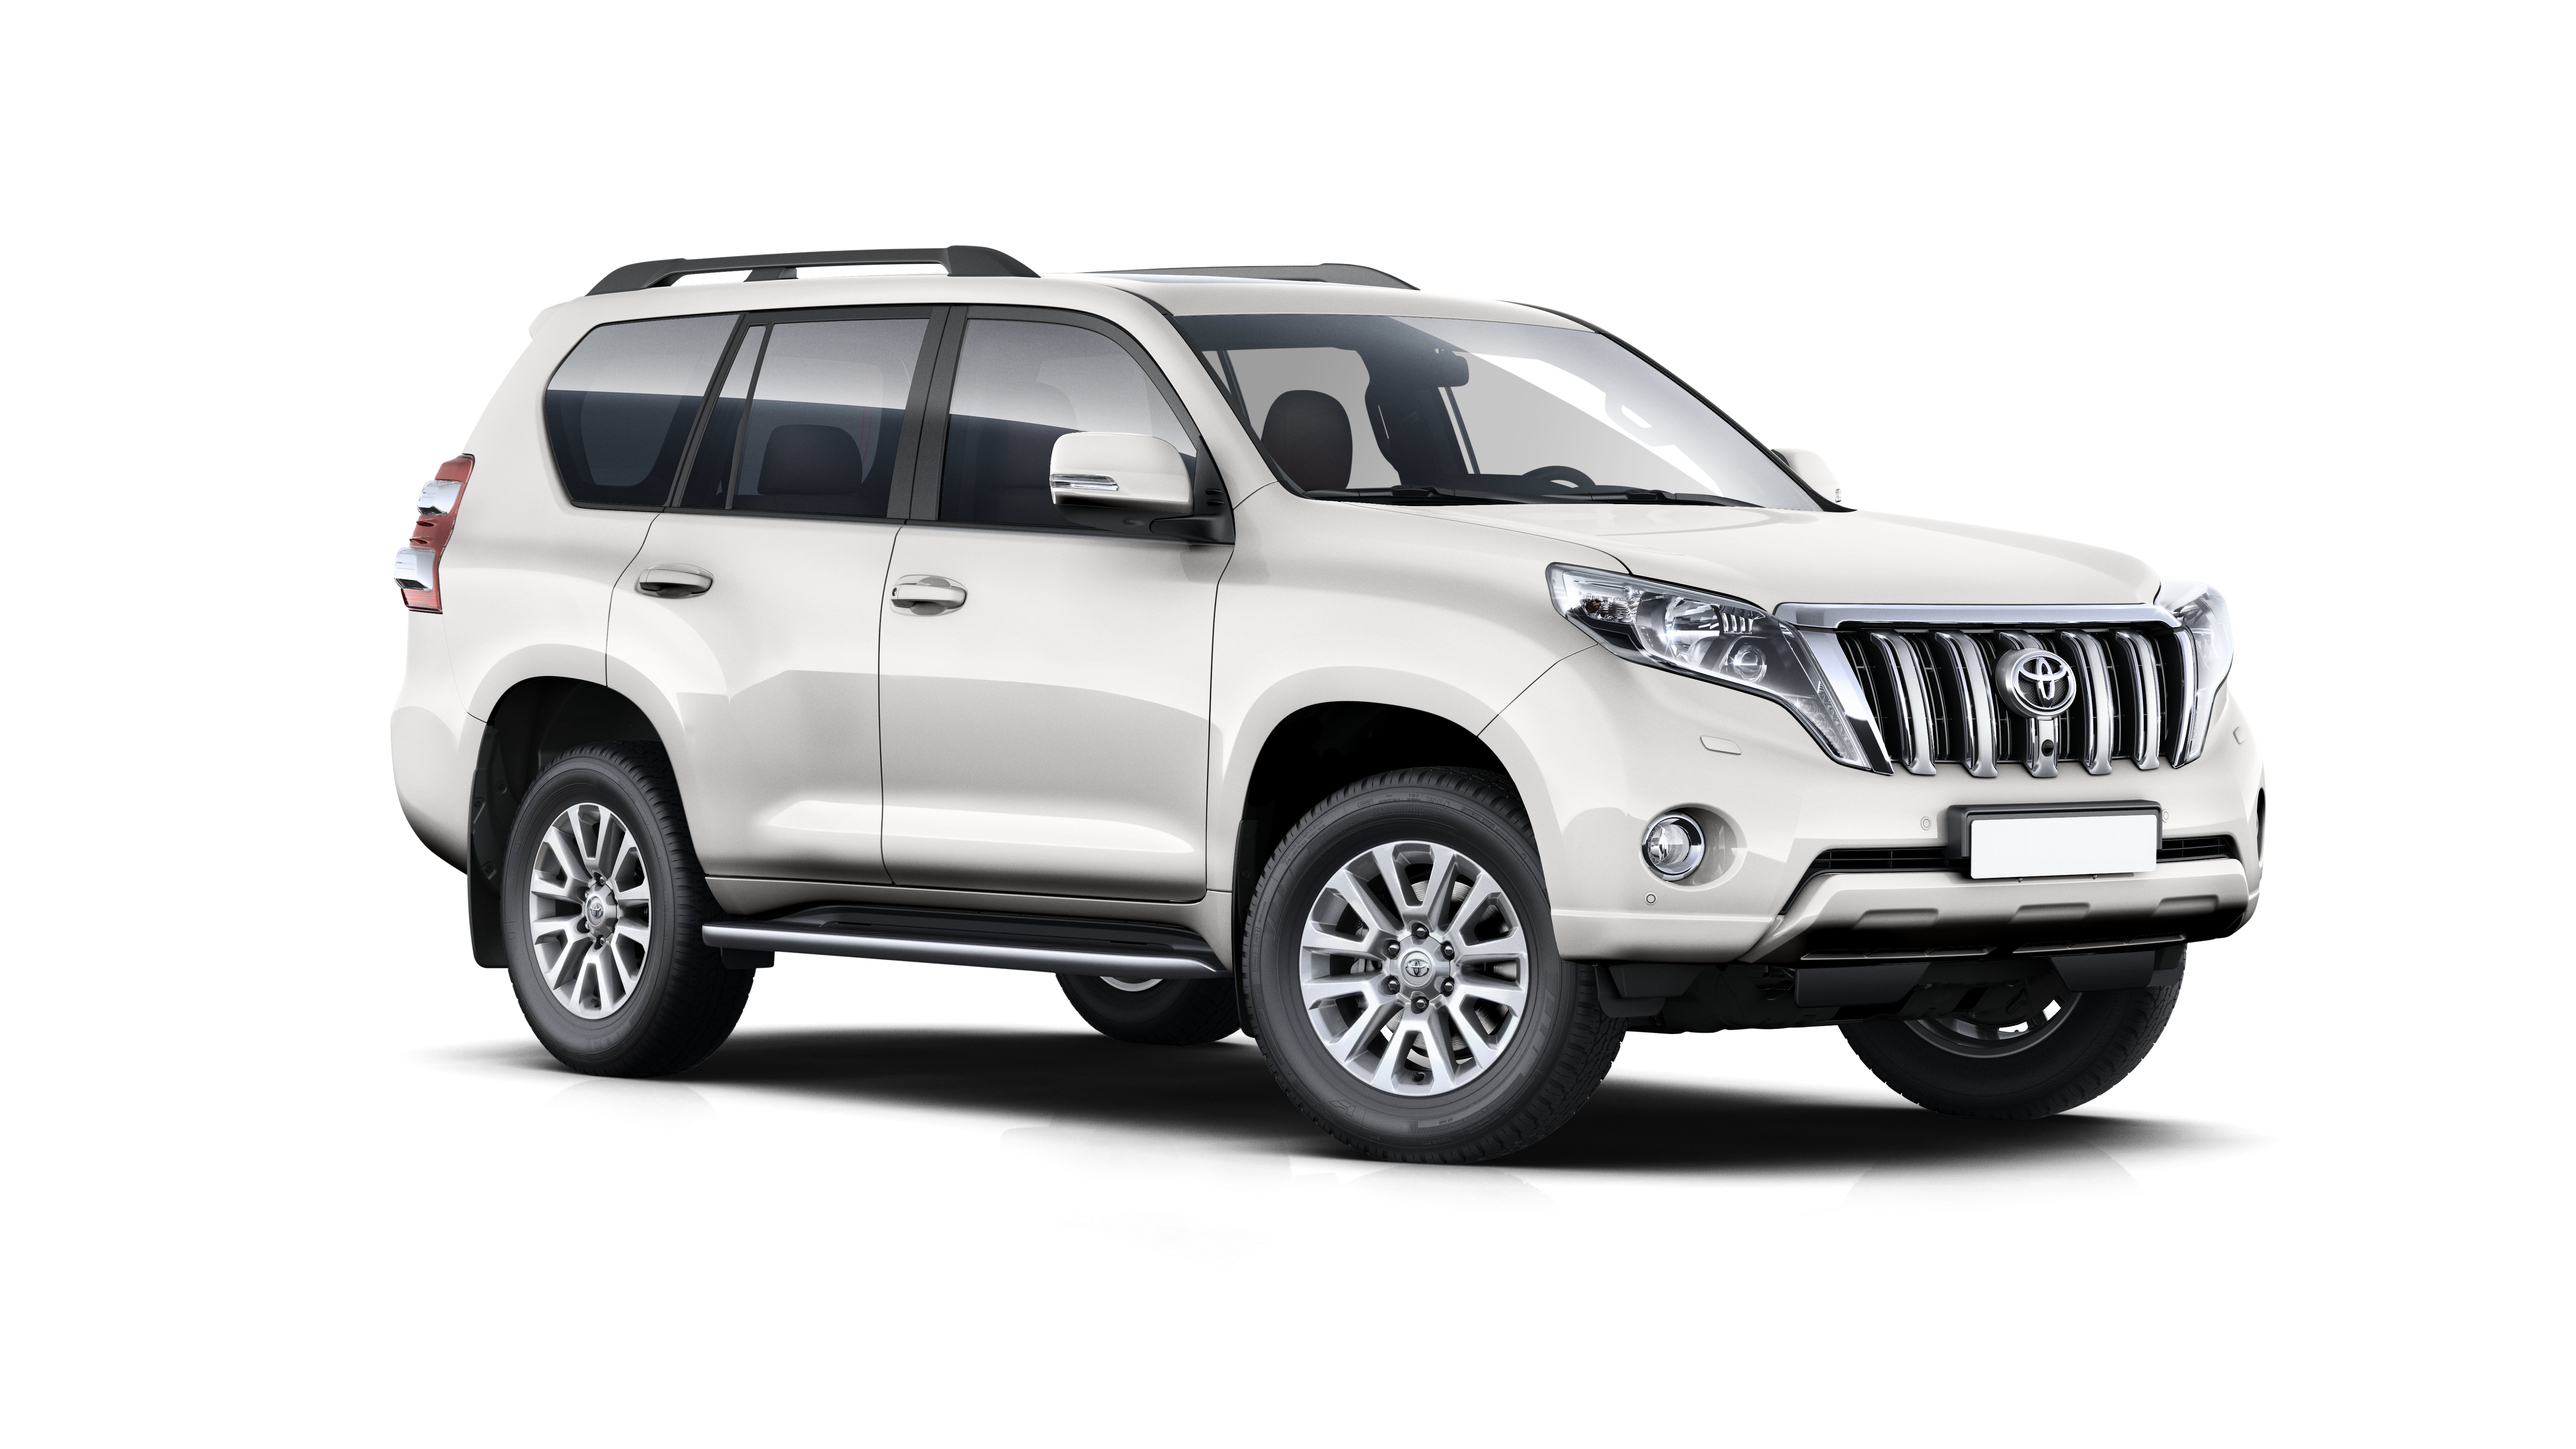 Toyota Land Cruiser 150 4x4 2016 From Mycar Guide To Iceland